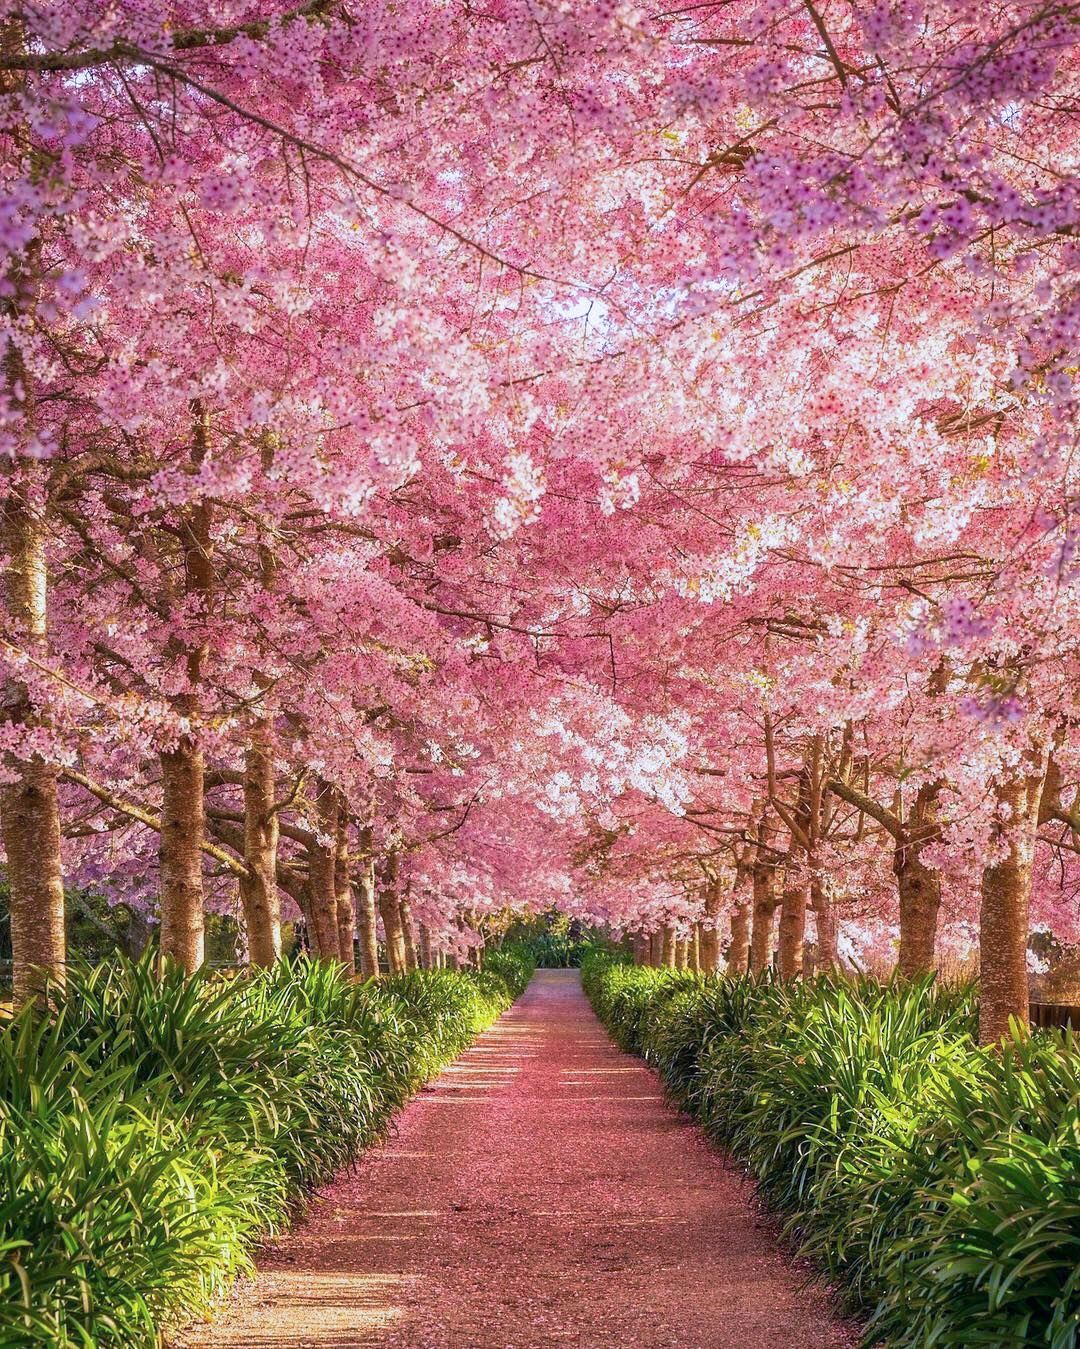 Cherry Blossoms New Zealand By Meghan Maloney Meghanmaloneyphotography On Instagram Spring Landscape Photography Beautiful Nature Landscape Photos